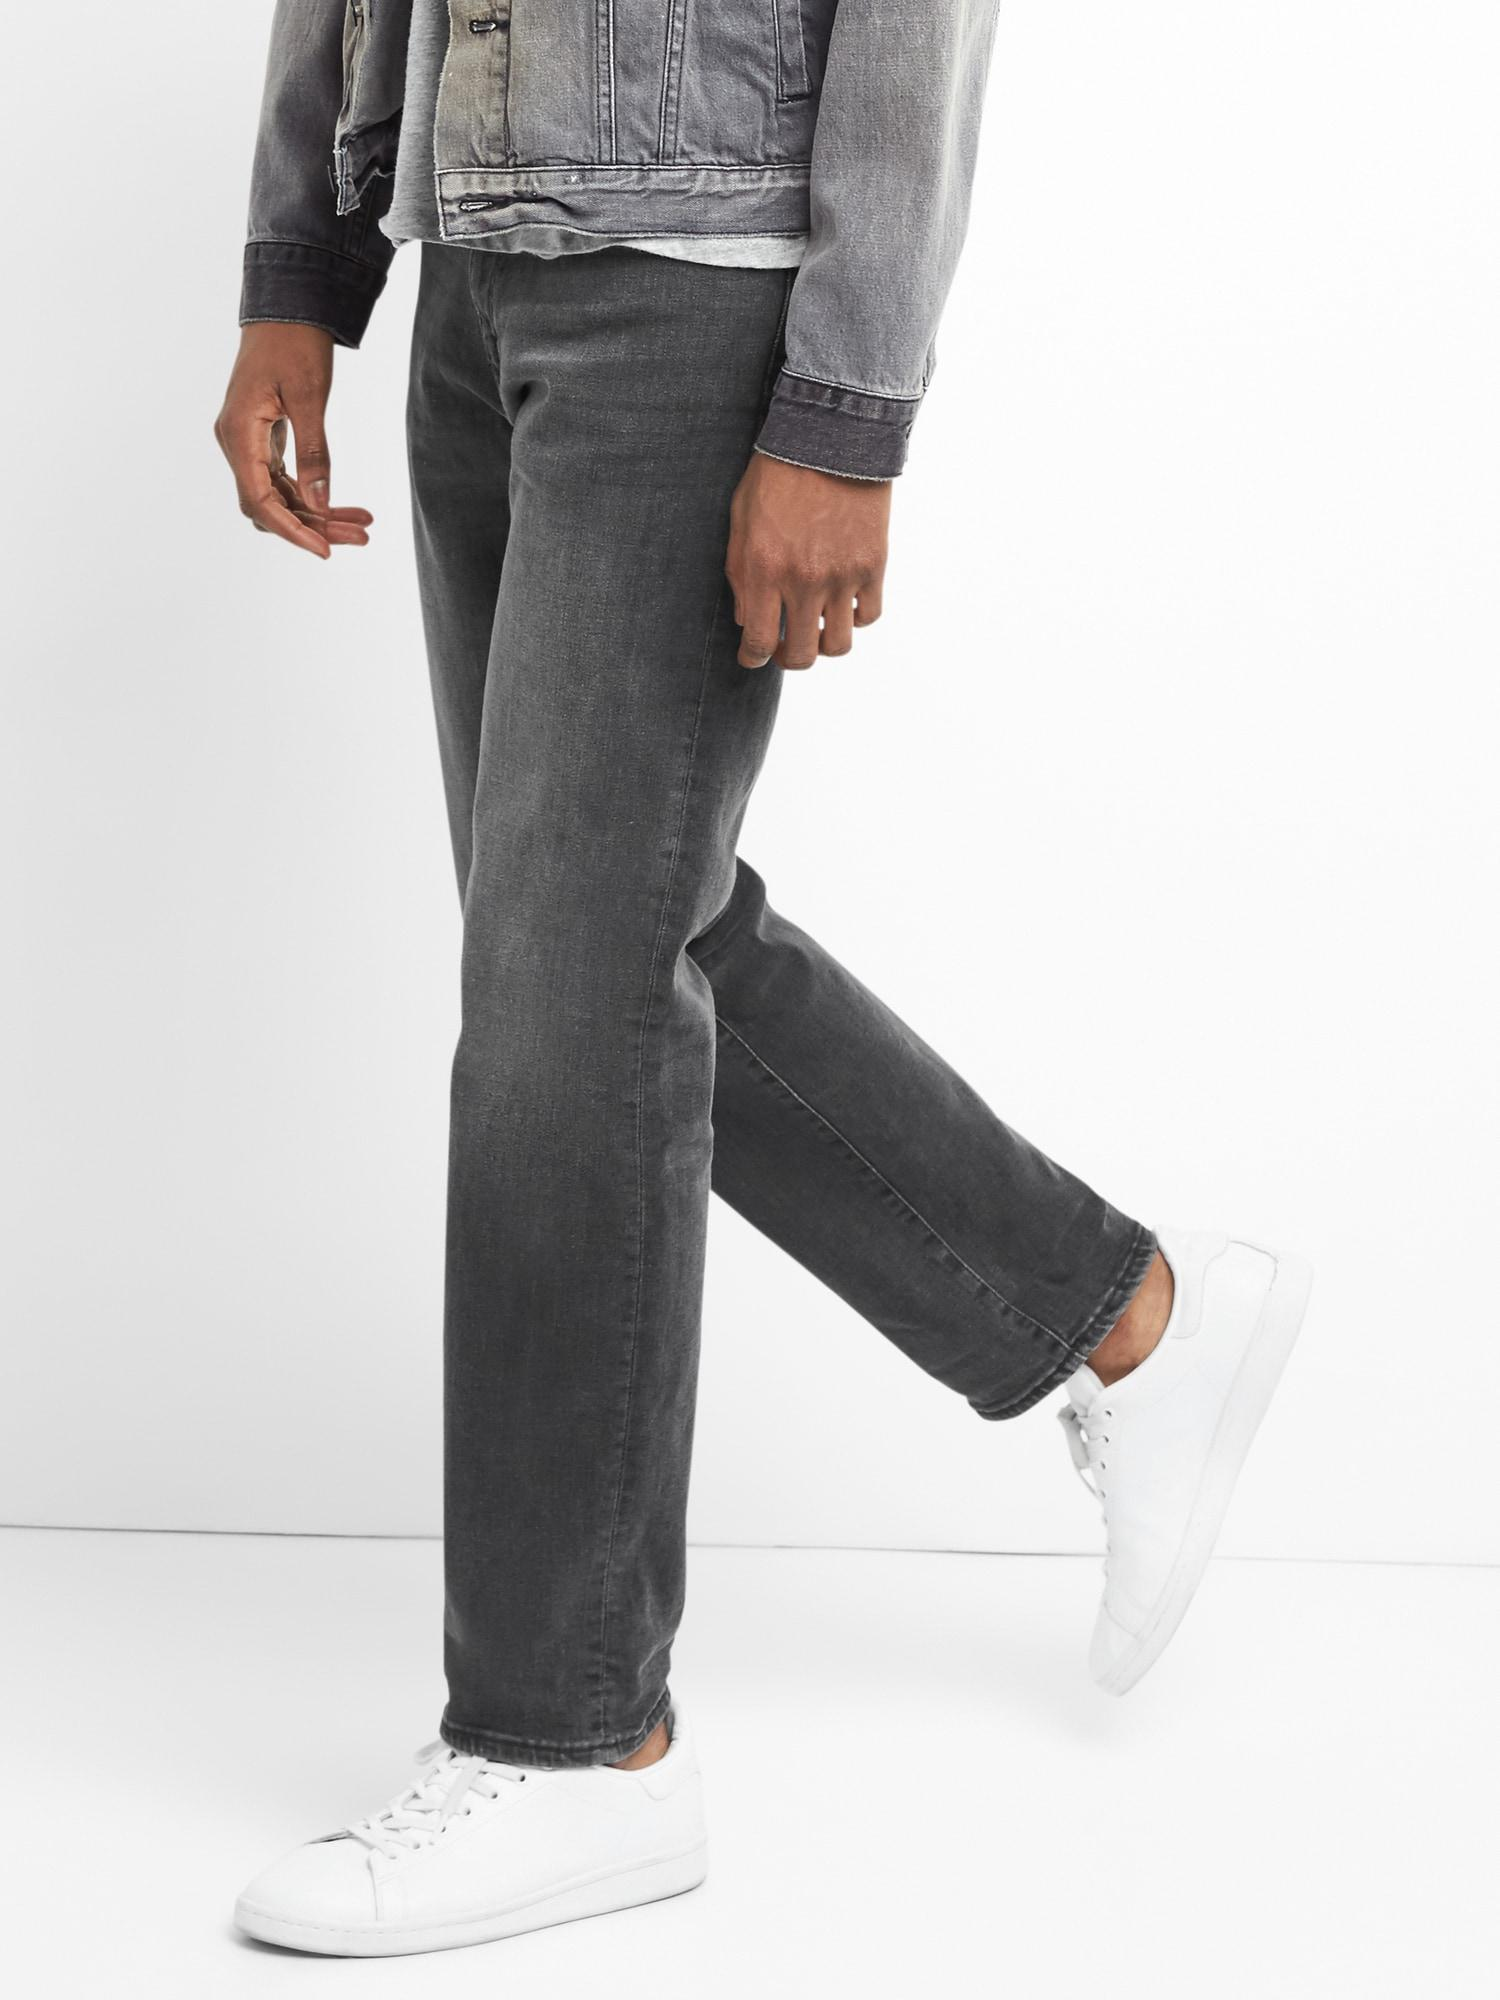 44d40b7d57a73 Lyst - Gap Washwell Jeans In Slim Straight Fit With Flex in Black ...